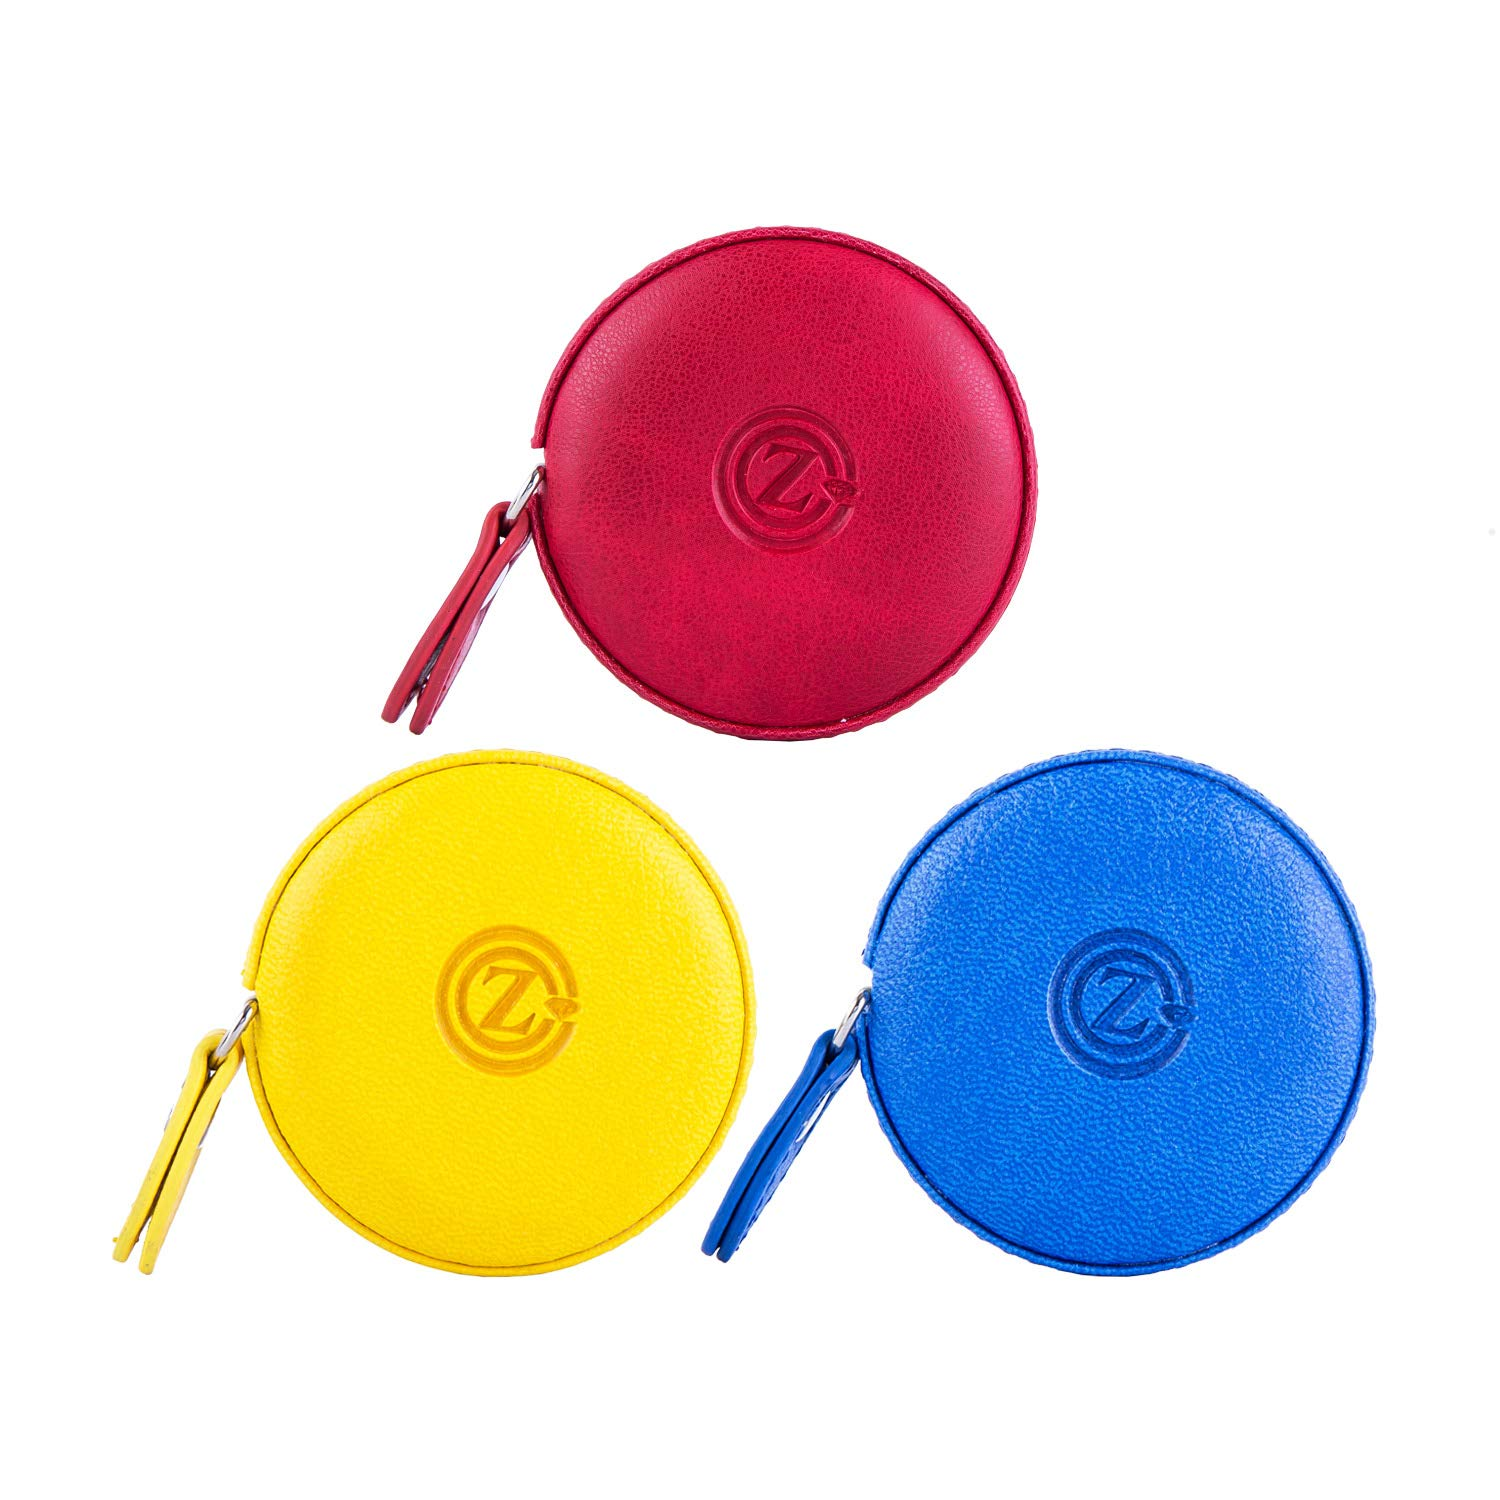 GZ Sewing Tape Measure Leather Retractable Body Measuring Tape